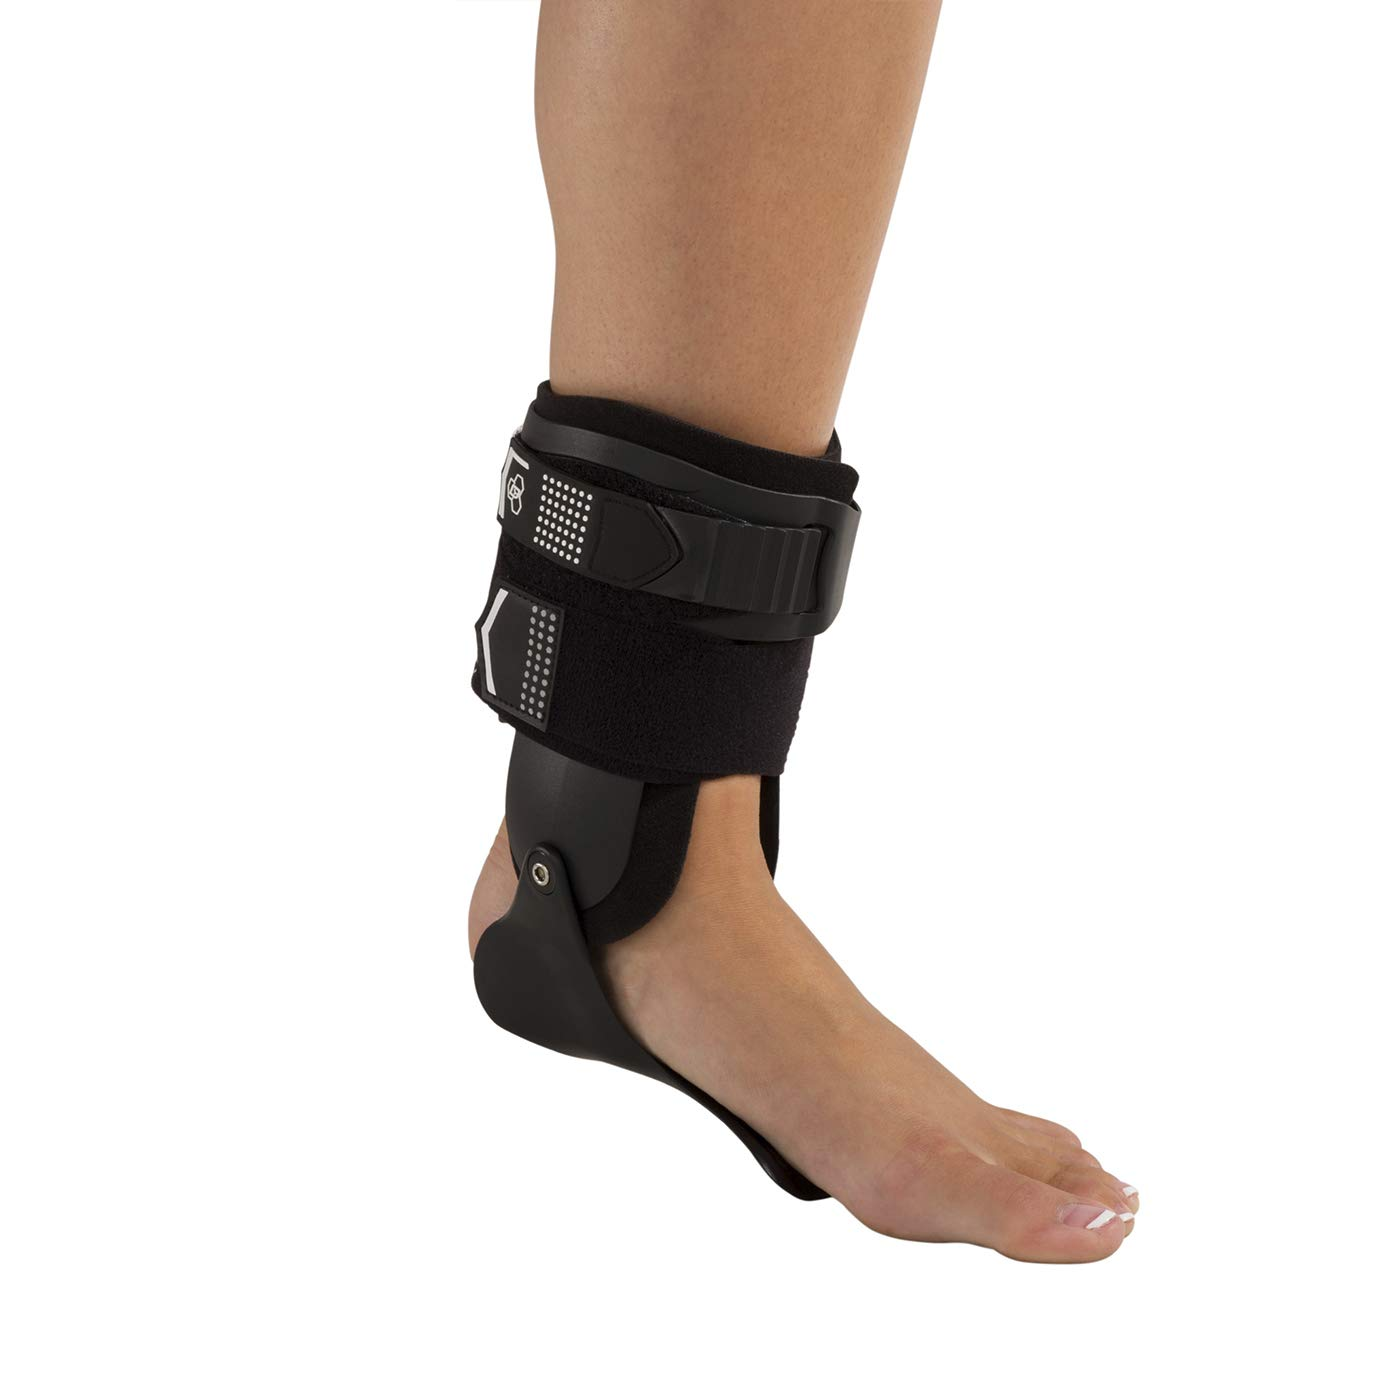 DonJoy Performance Bionic Stirrup Ankle Braces (Right and Left Pair), Maximum Medial Lateral Ankle Support, Low-Profile Rigid Brace, Adjustable - Black, Medium - Value Bundle by DonJoy Performance (Image #8)